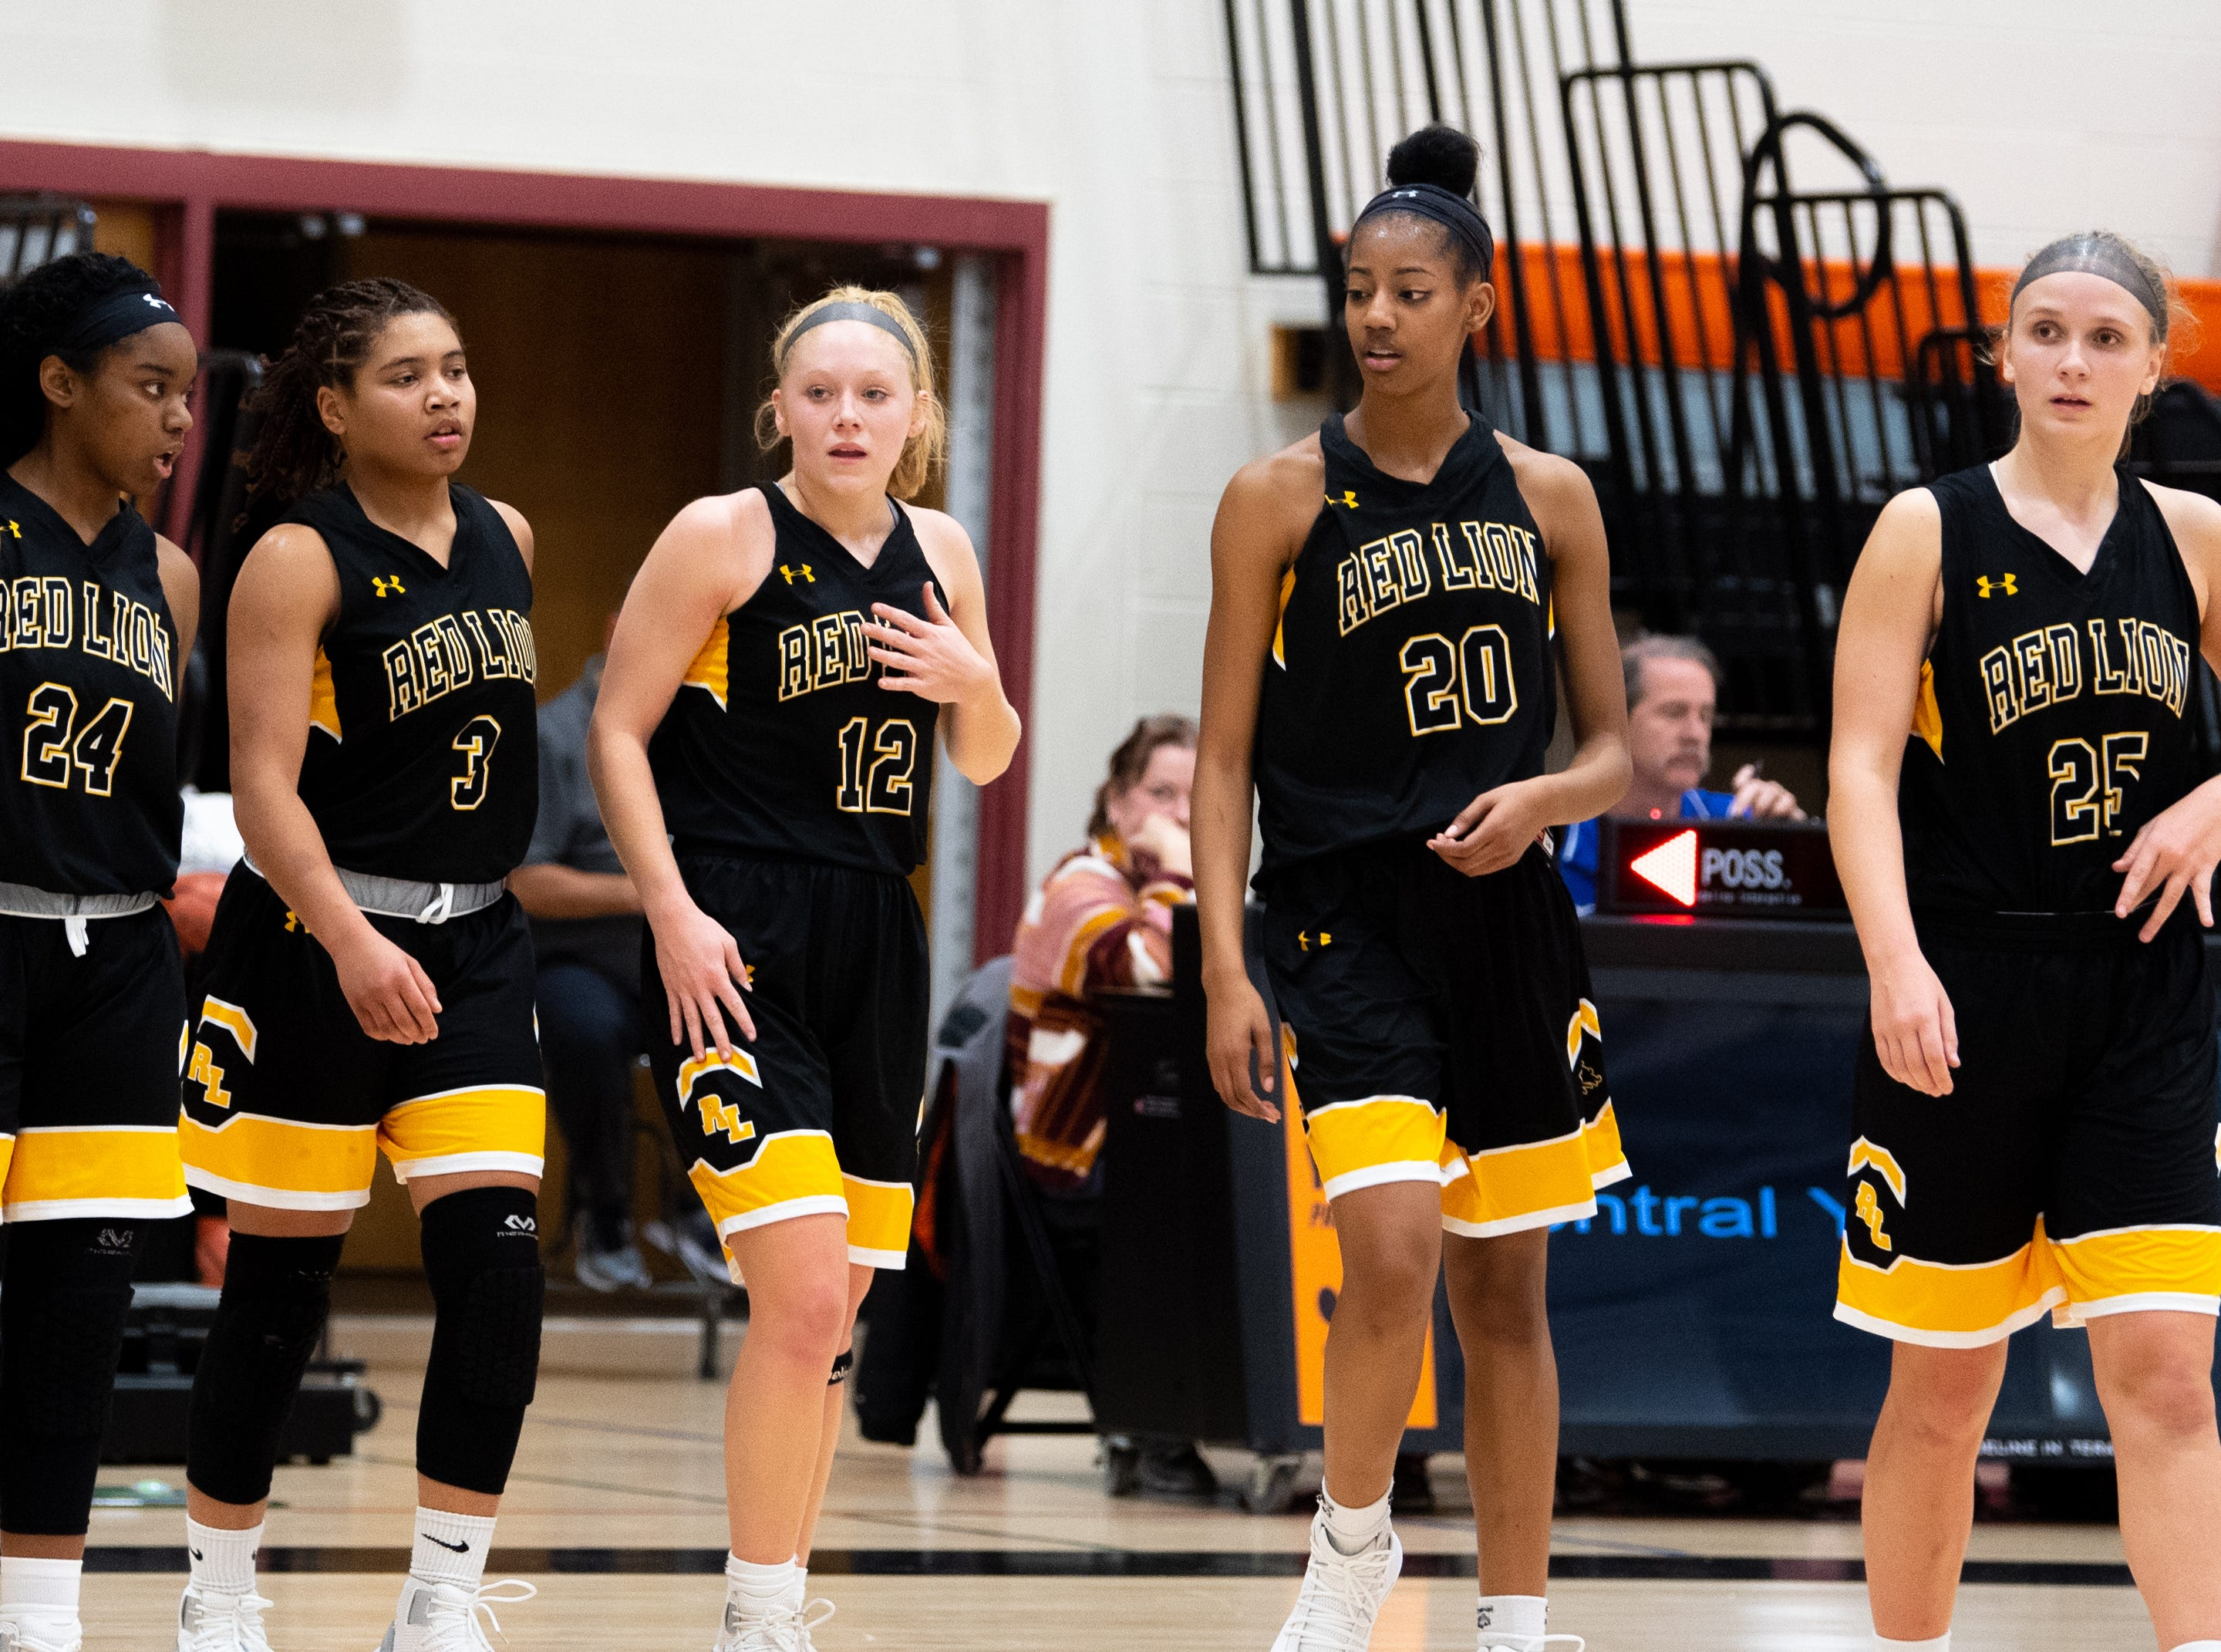 Jordyn Foster (24), Asia Eames (3), Paige Frey (12), Makiah Shaw (20), Julia Beiler (25) return to the floor after a time-out during the girls' basketball game between Central York and Red Lion at Central York, Tuesday, December 11, 2018. The Panthers defeated the Lions 40-38.